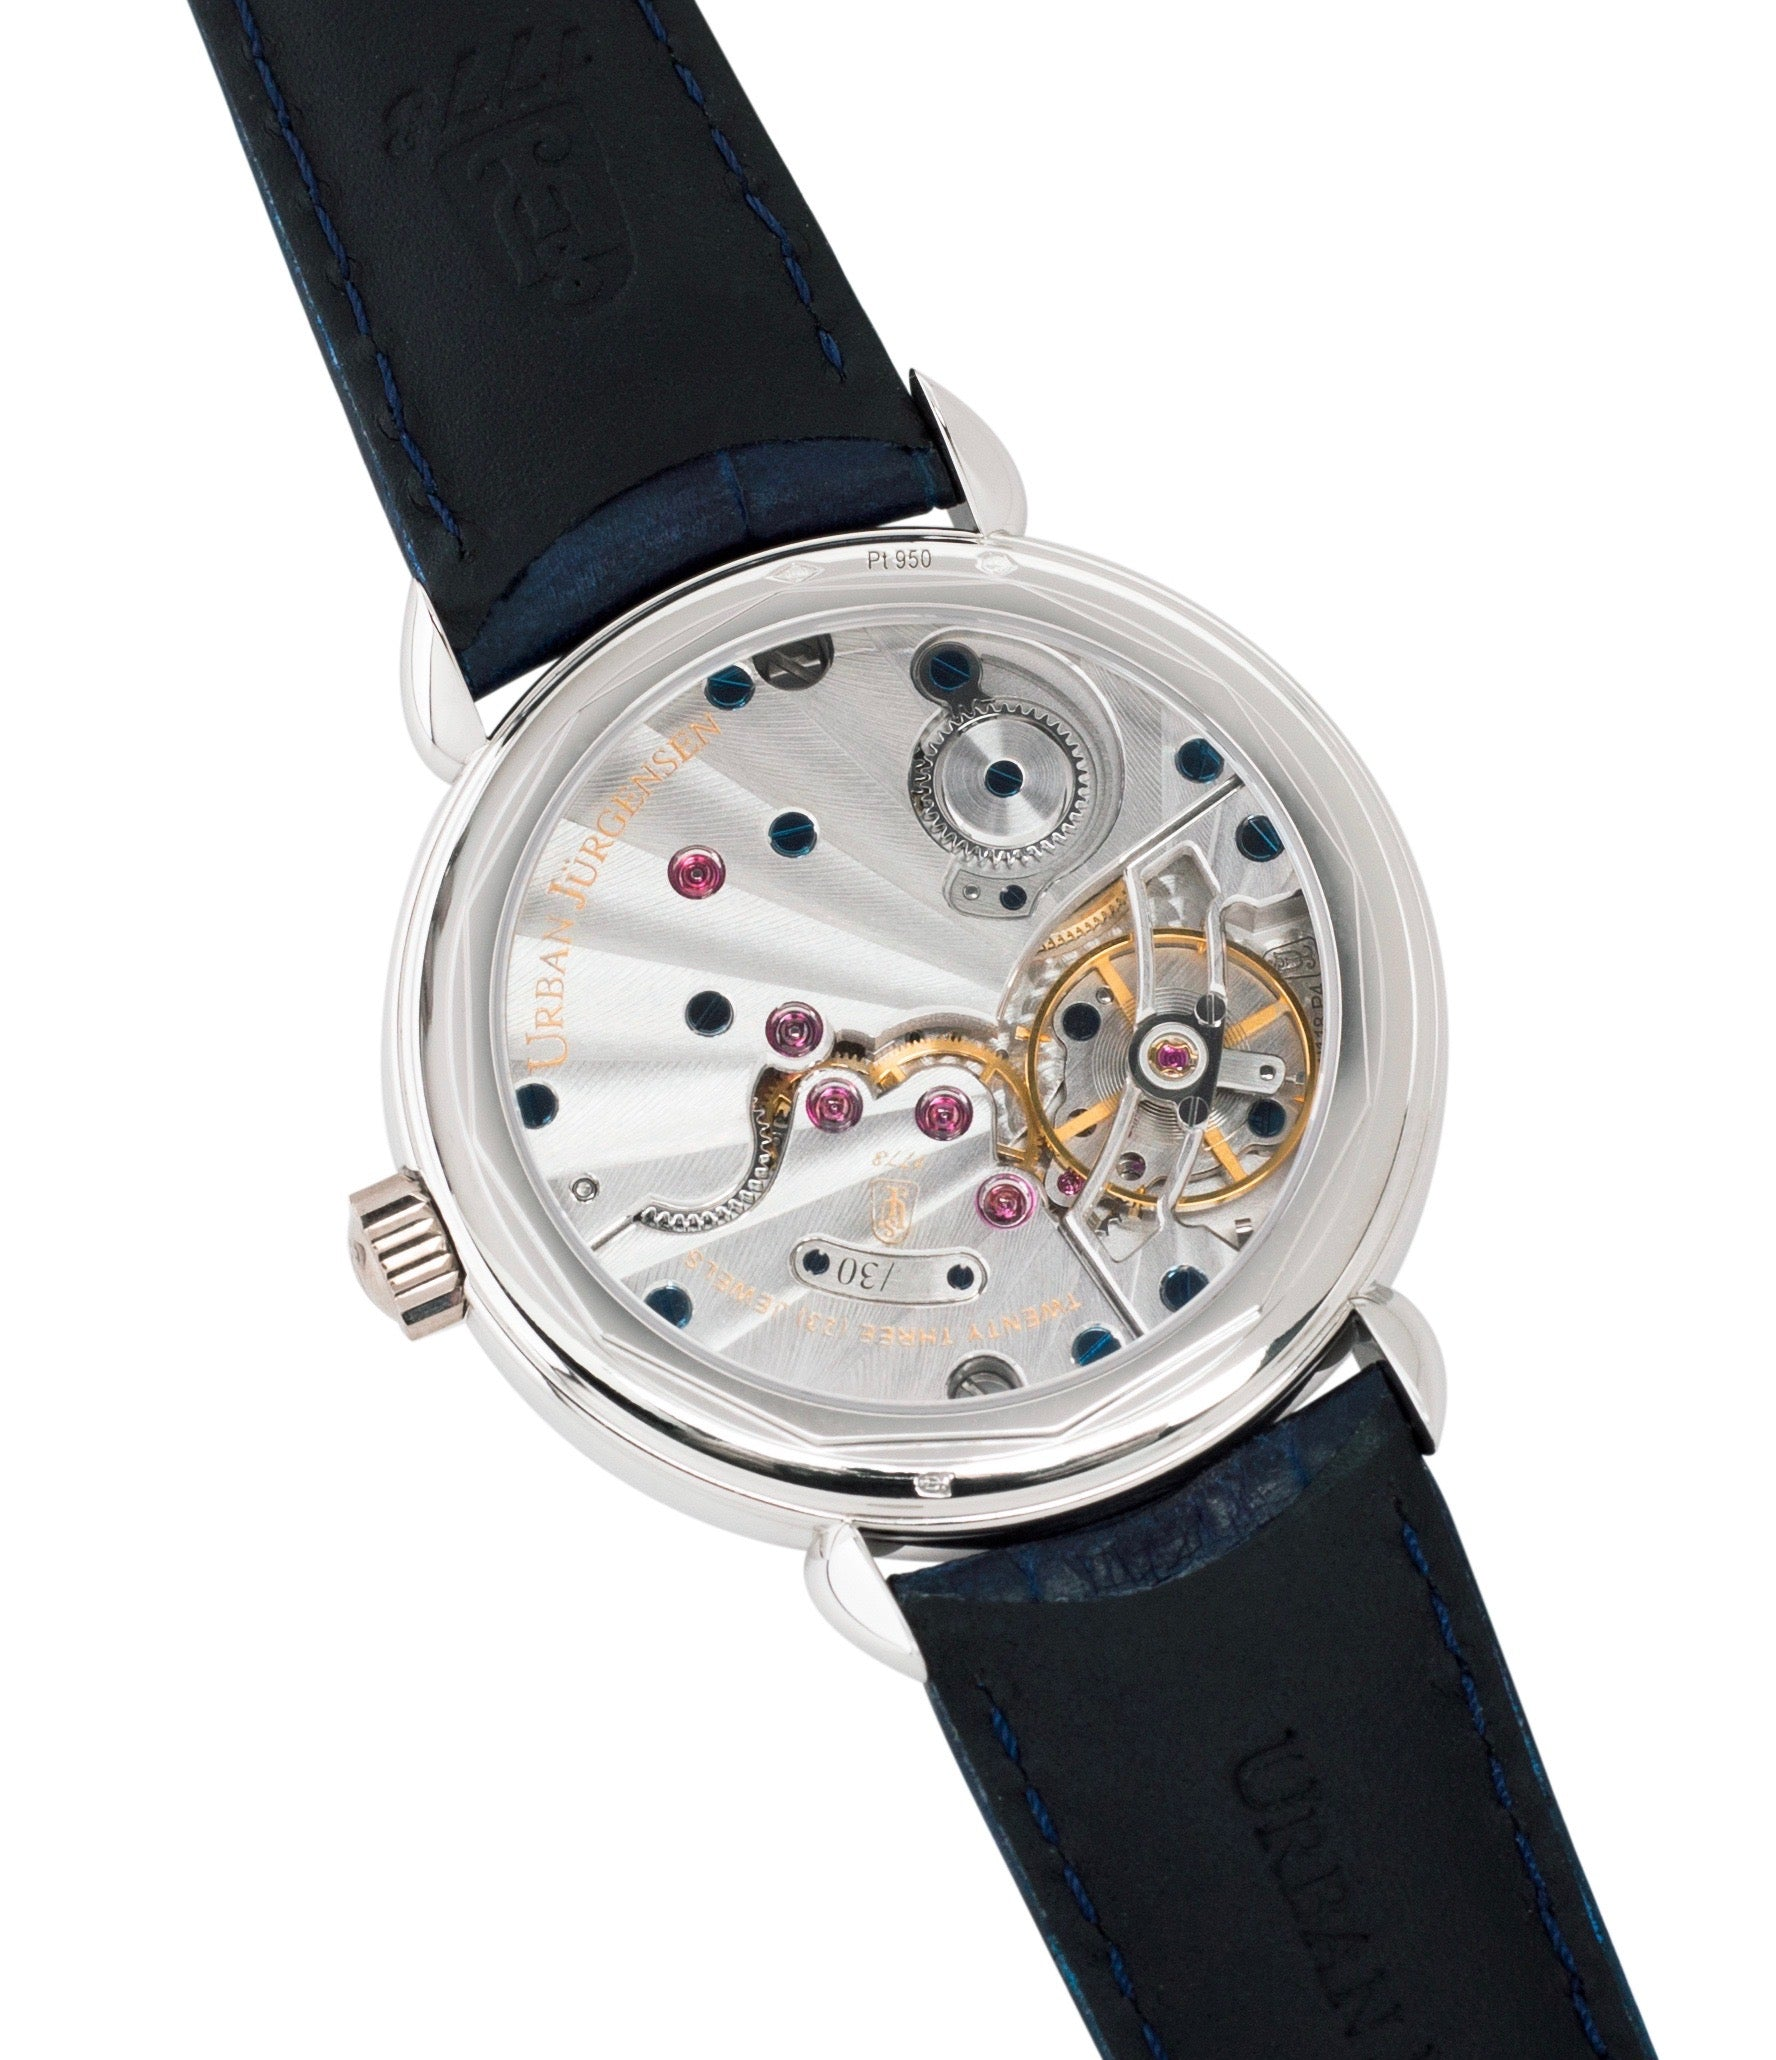 P4 in-house movement Urban Jurgensen 1140 PT Blue dial watch online at A Collected Man London independent watchmaker specialist authorised retailer in the UK